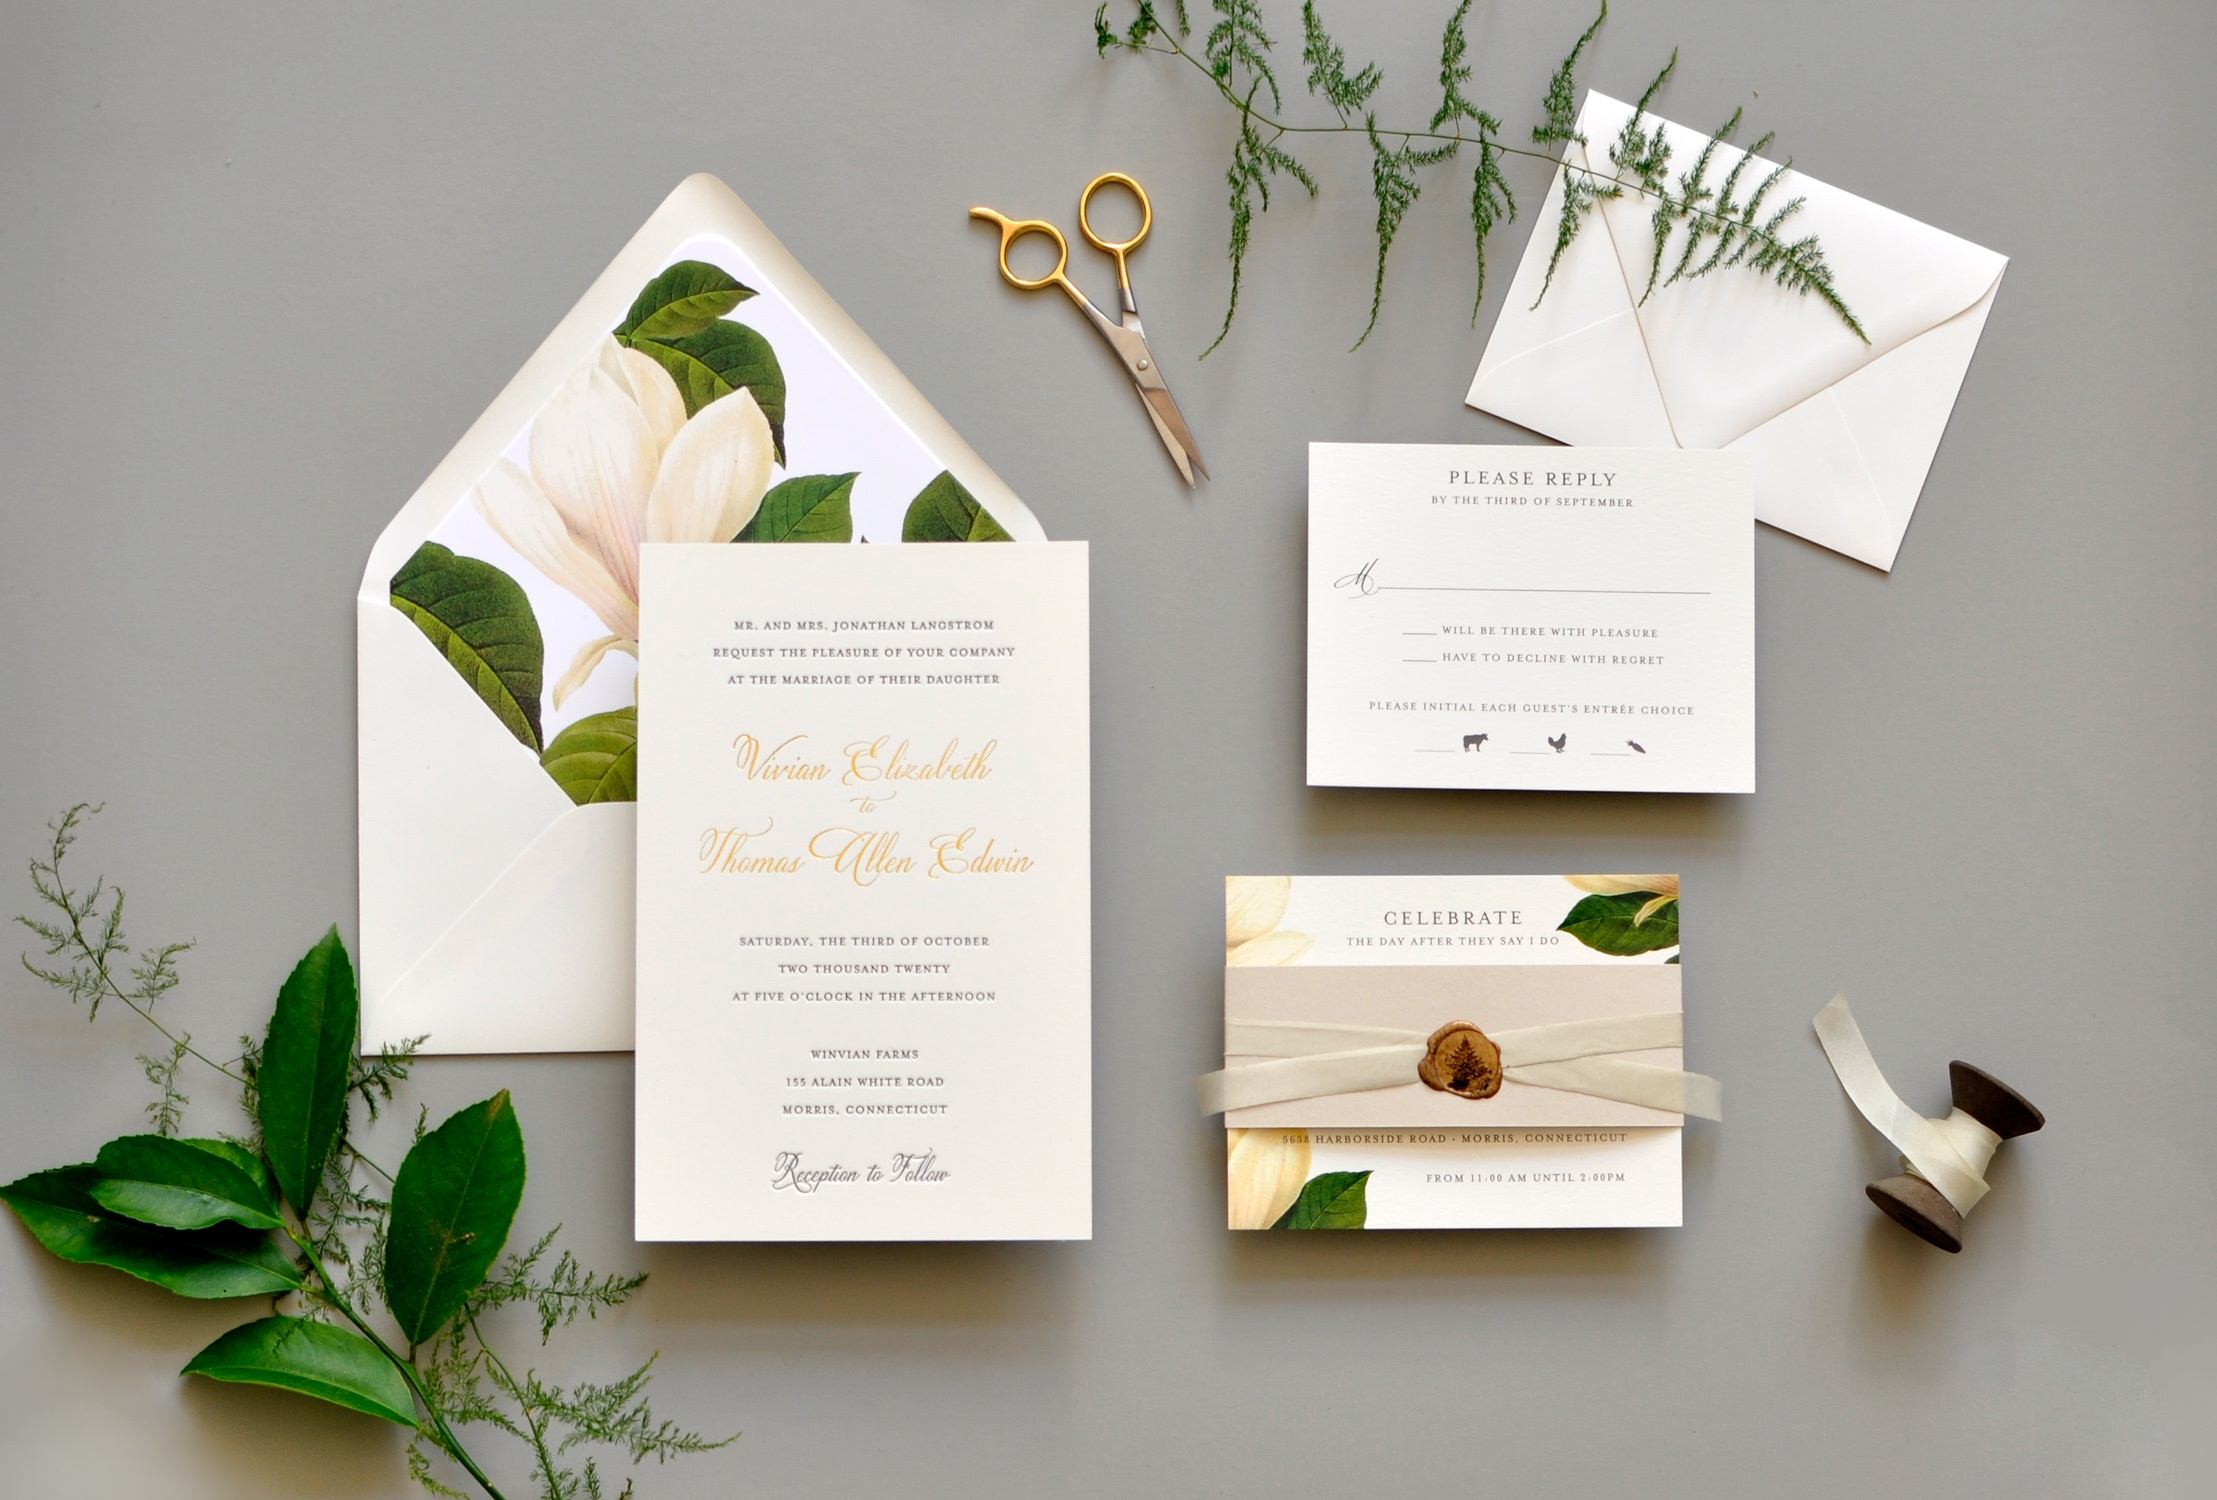 A lovely letterpress invitation is accented with a touch of gold foil.  A large magnolia flower on the envelope liner is the perfect accompaniment!